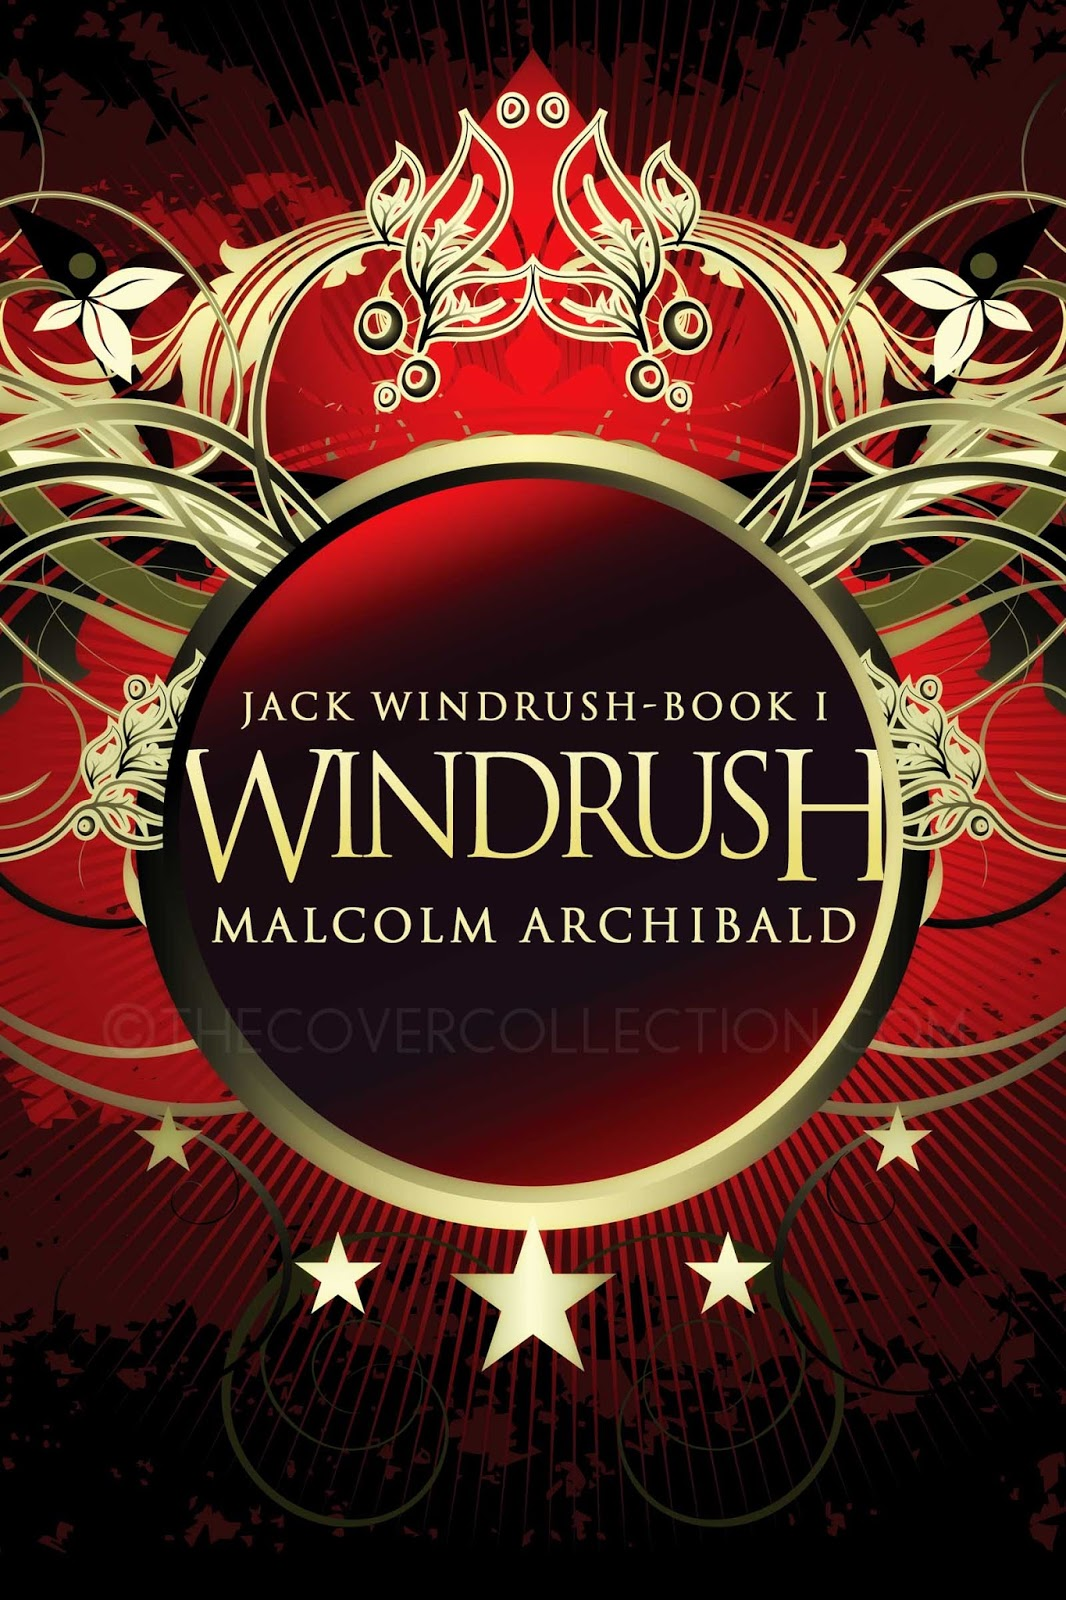 Interview with novelist Malcolm Archibal